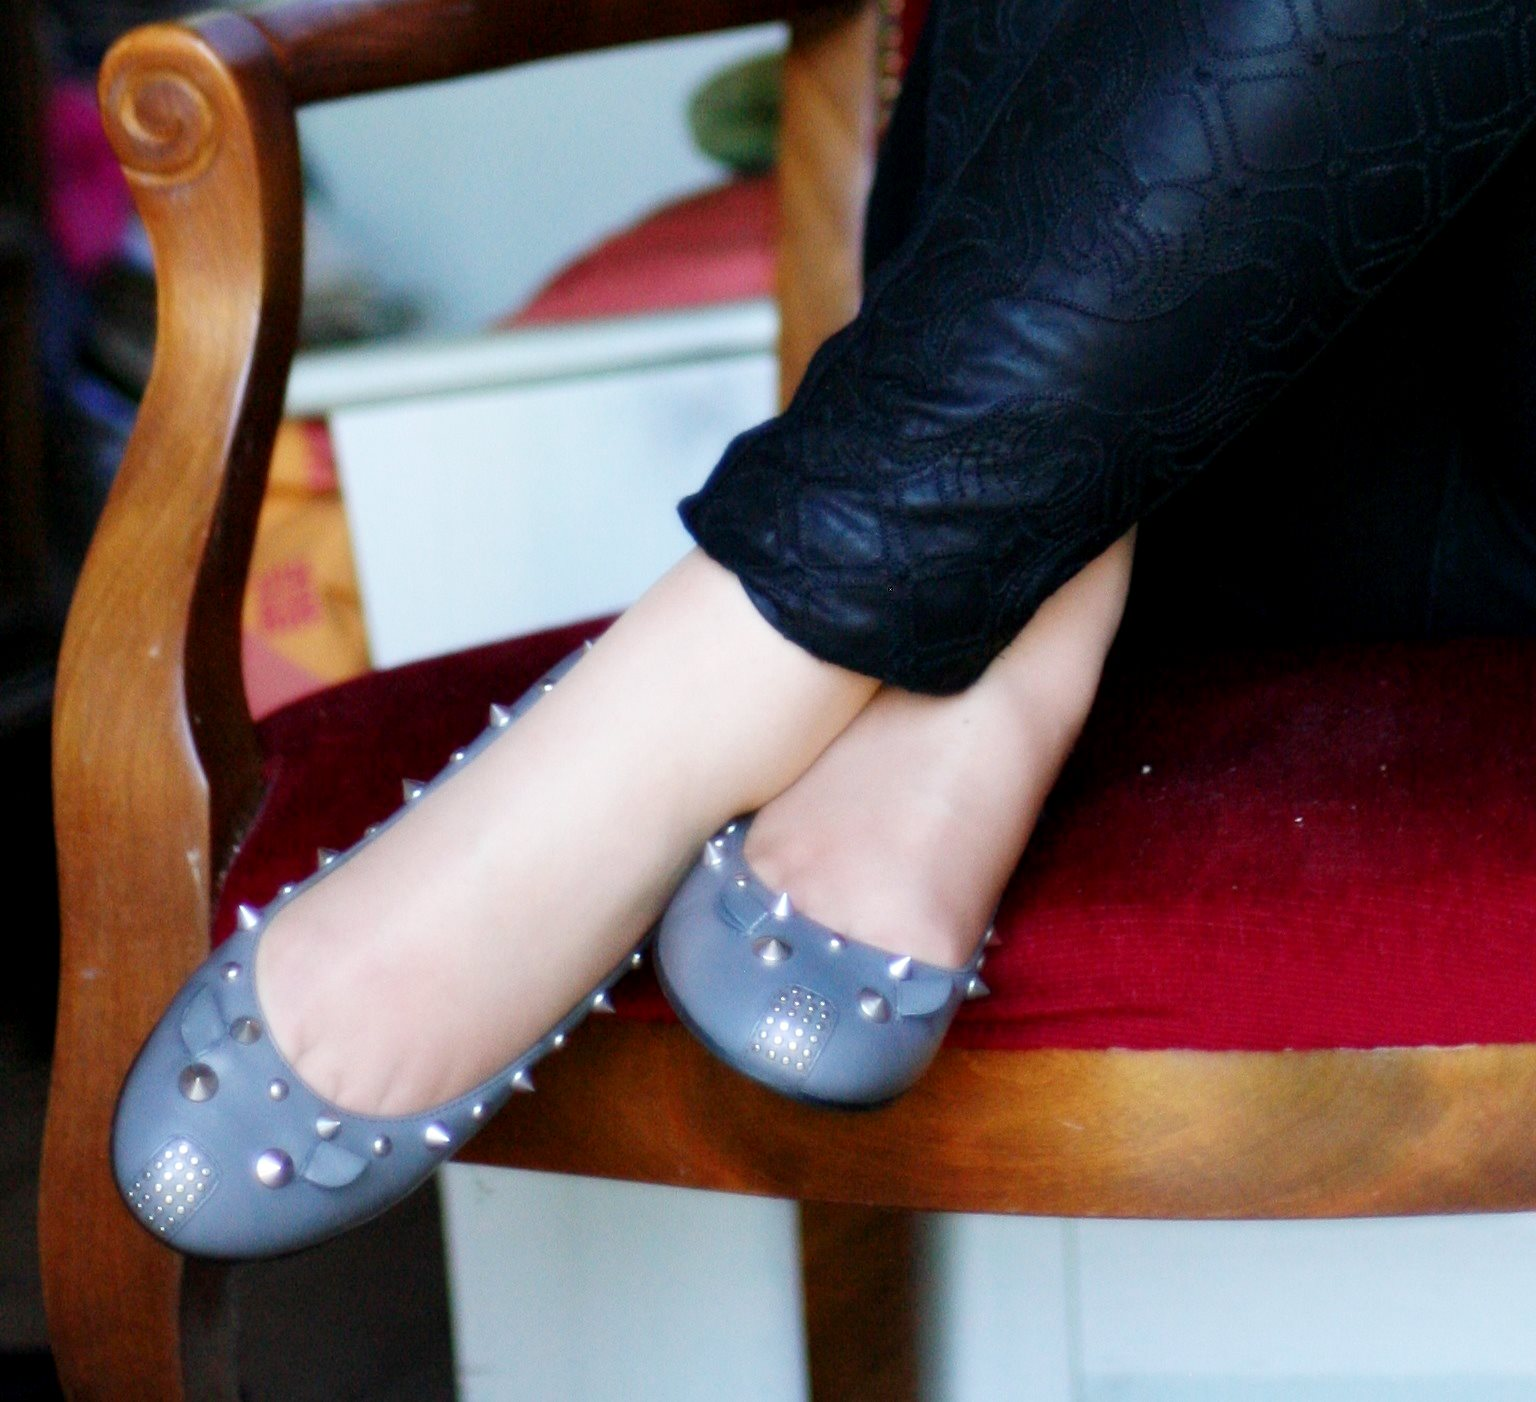 ballerines-souris-marc-jacobs-blog-mode